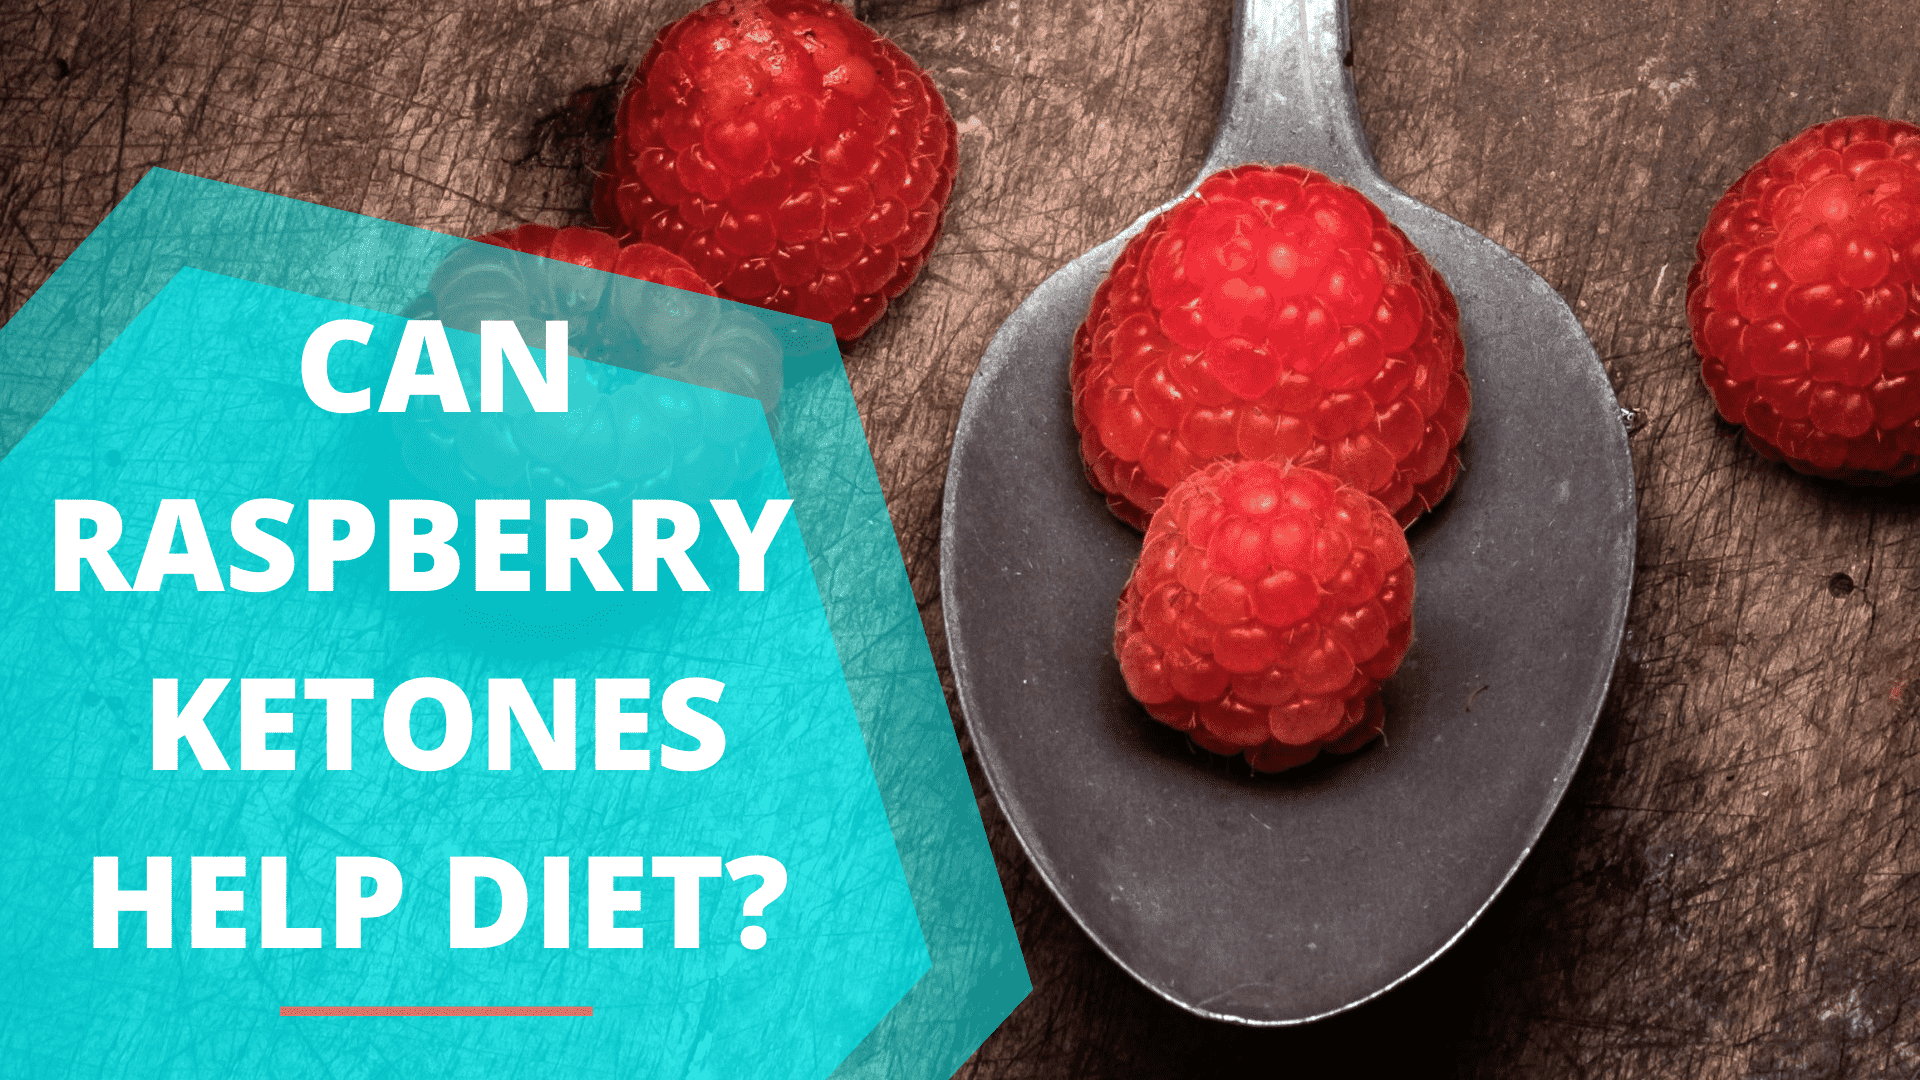 Can Raspberry Ketones Help Diet?